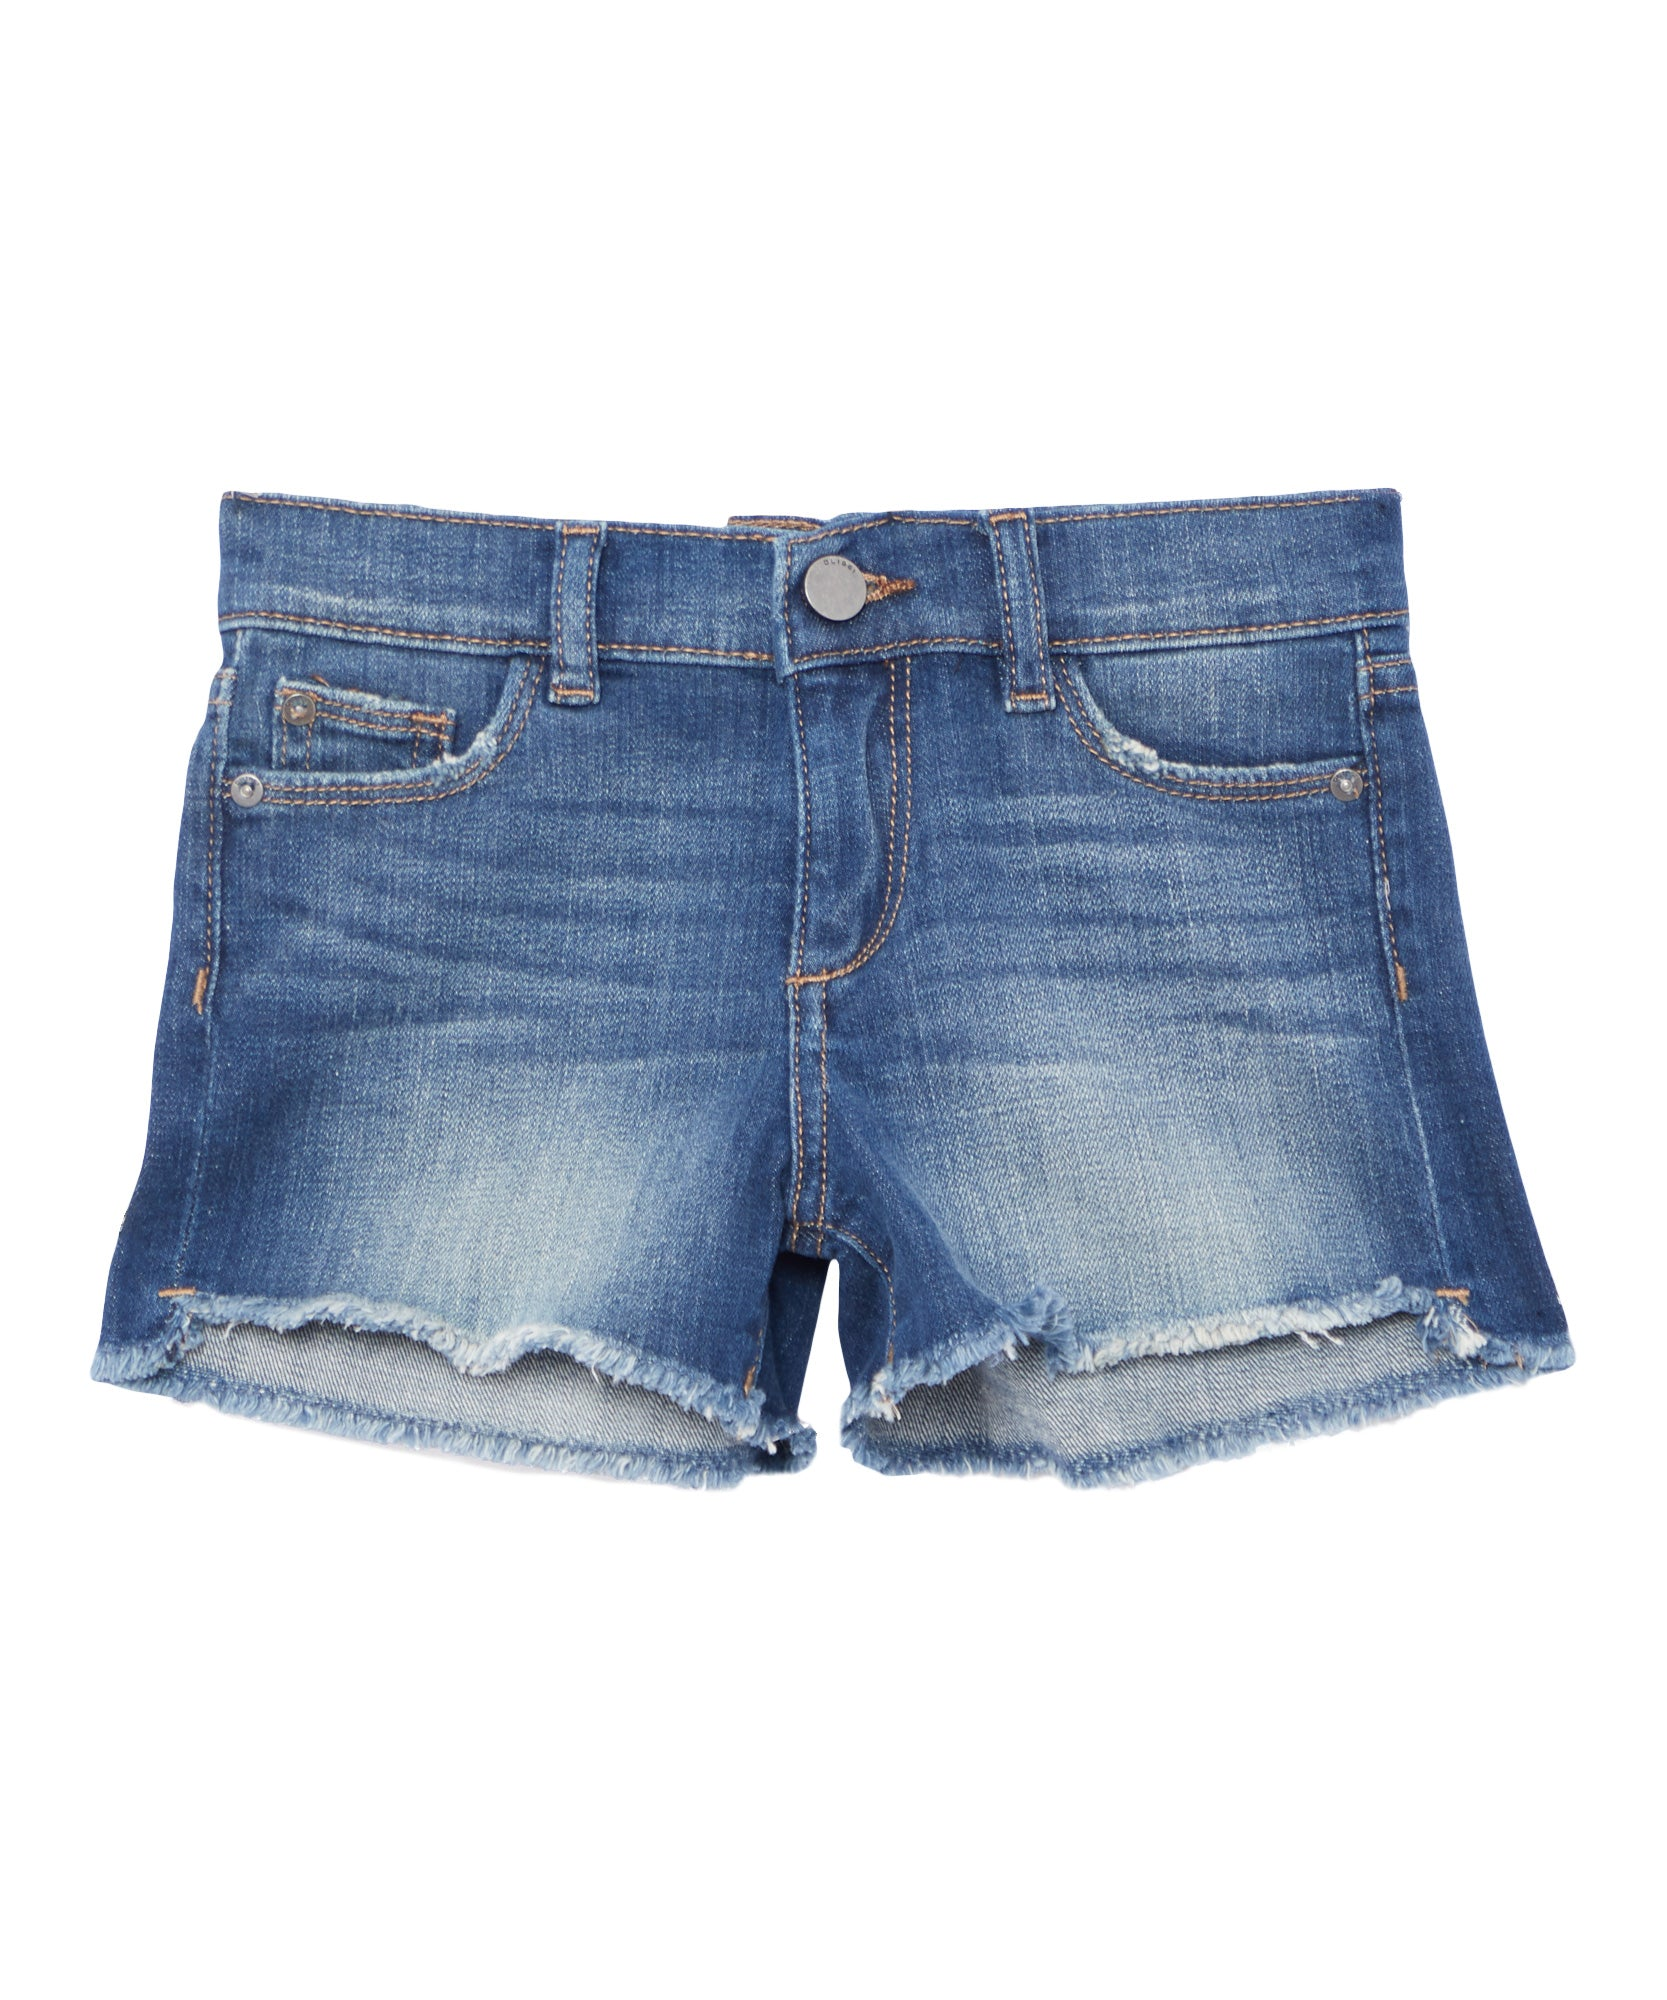 Lucy Sandcastle Denim Shorts